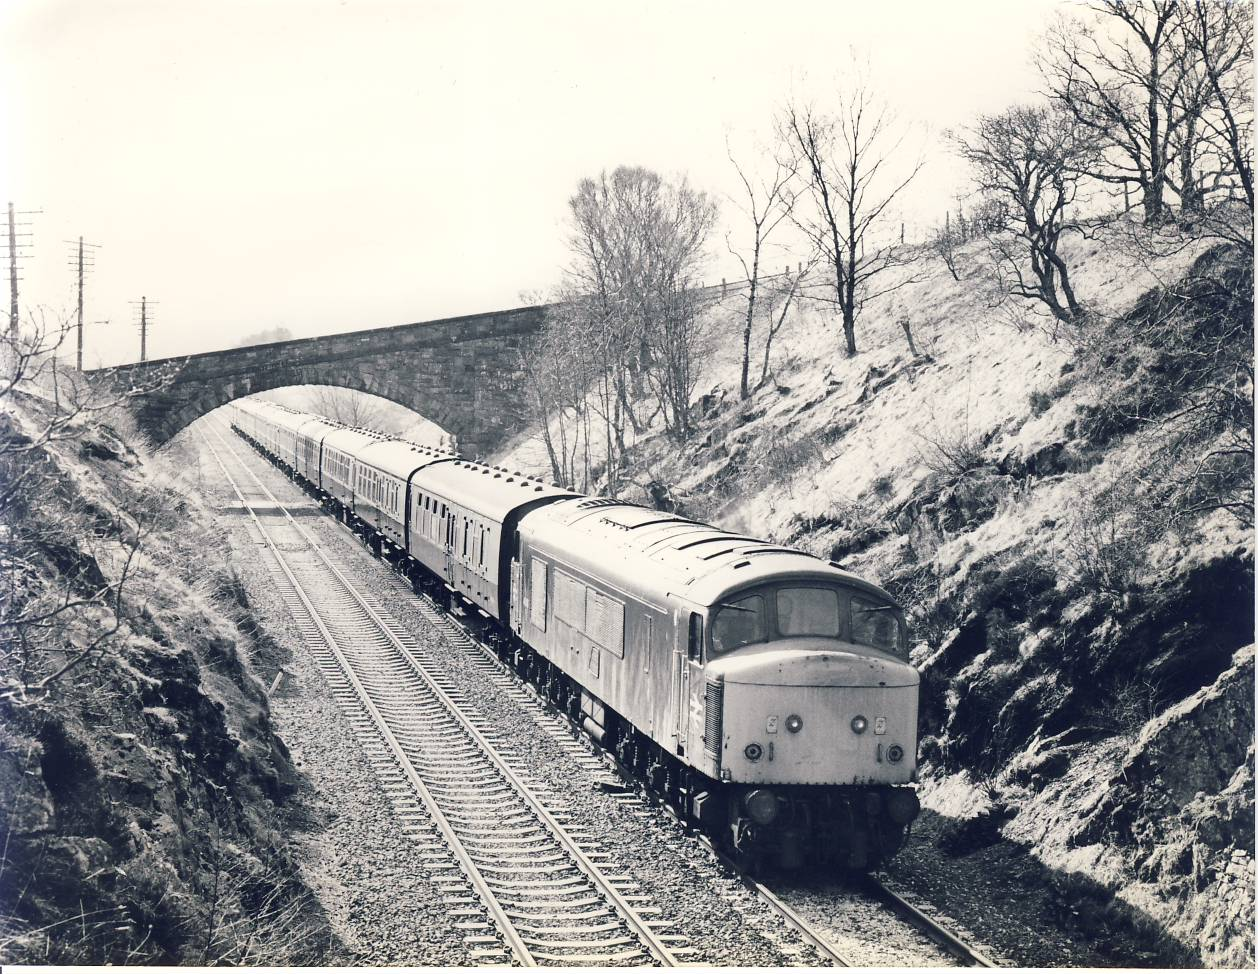 1984 BIRKETT TUNNEL Settle Carlisle Line 45.109 Train Photo refSC154 Measure approx 6.5 x 8.5 inches / 16cm x 21cm - an original 'W.A.Sharman' black and white photographic print pre-owned item in very good condition. Details on reverse.